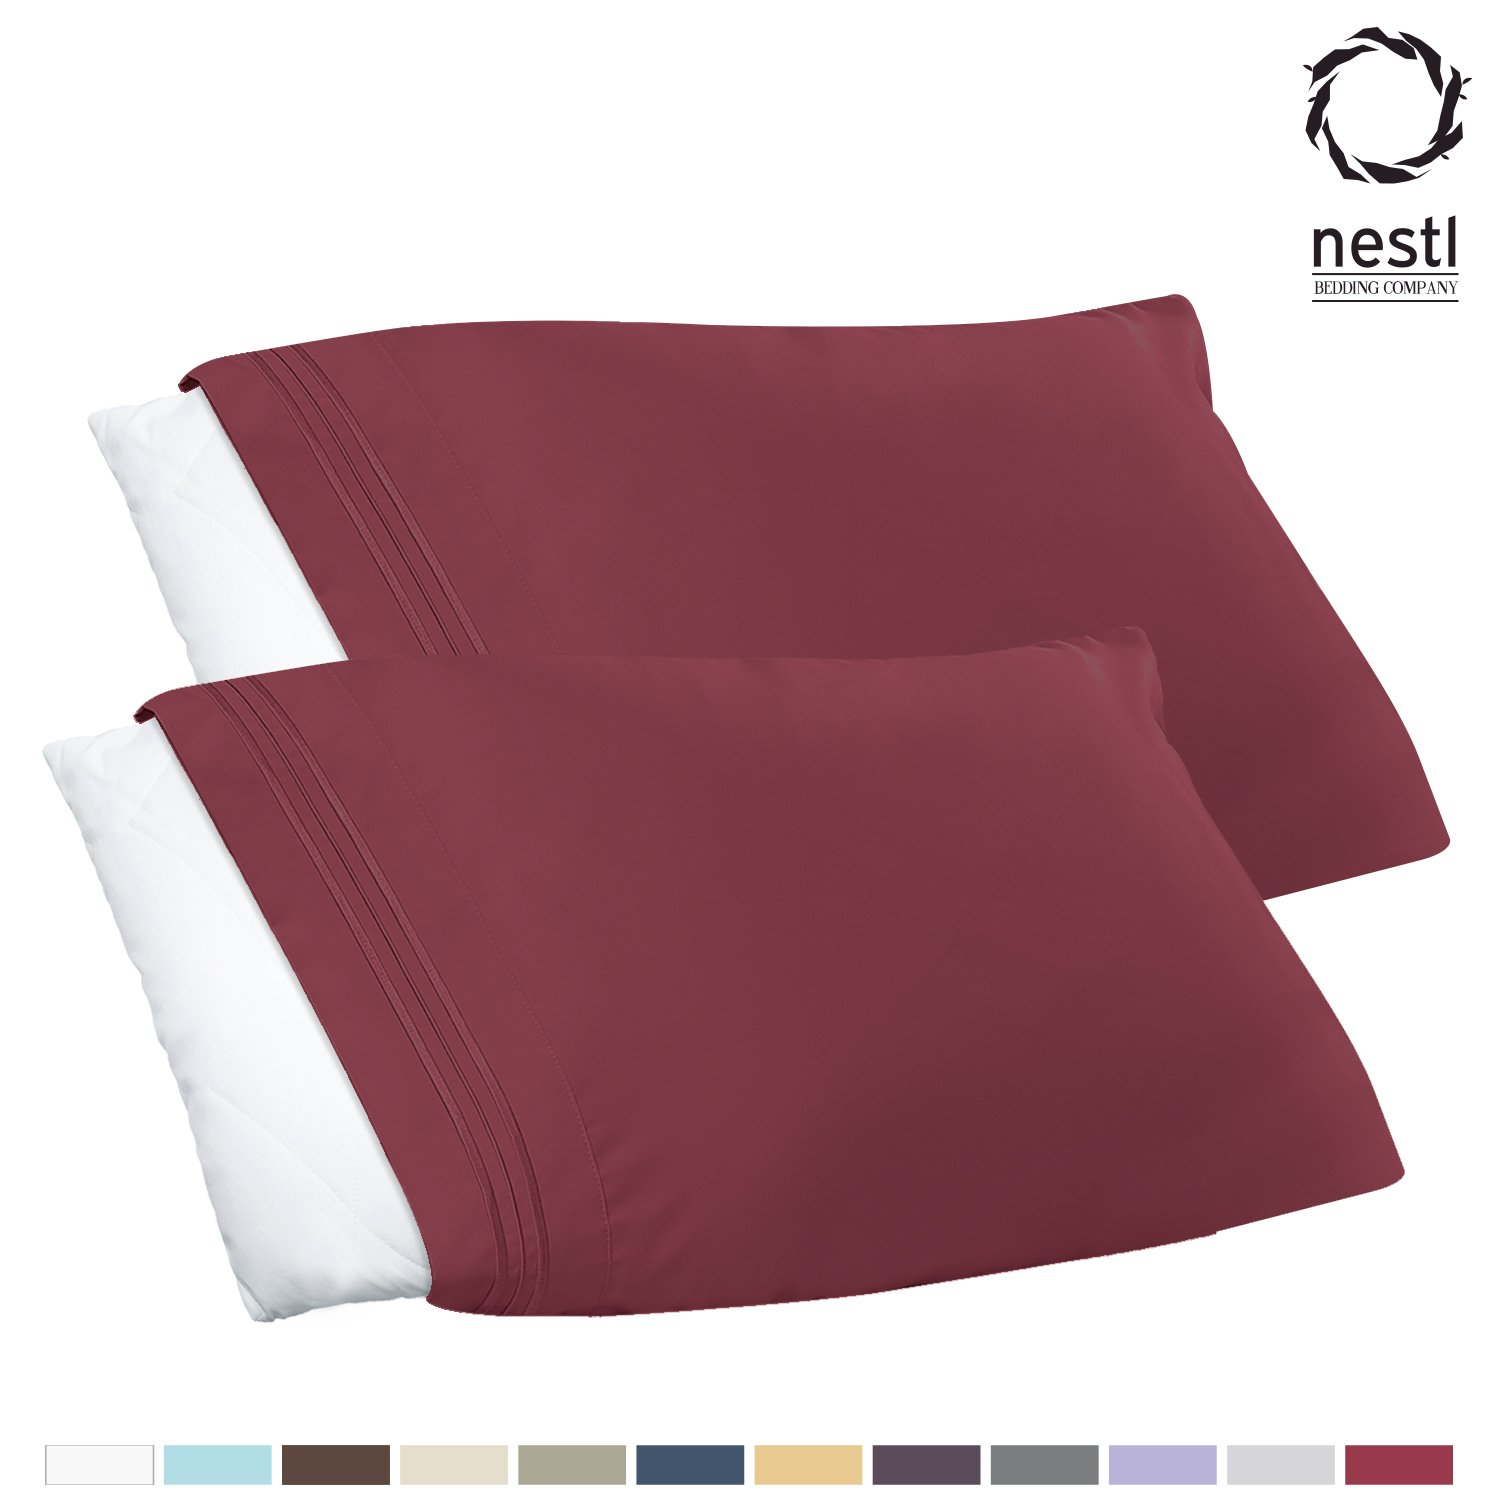 Queen Standard Burgundy Red, Set of 2 Pieces Pillowcase